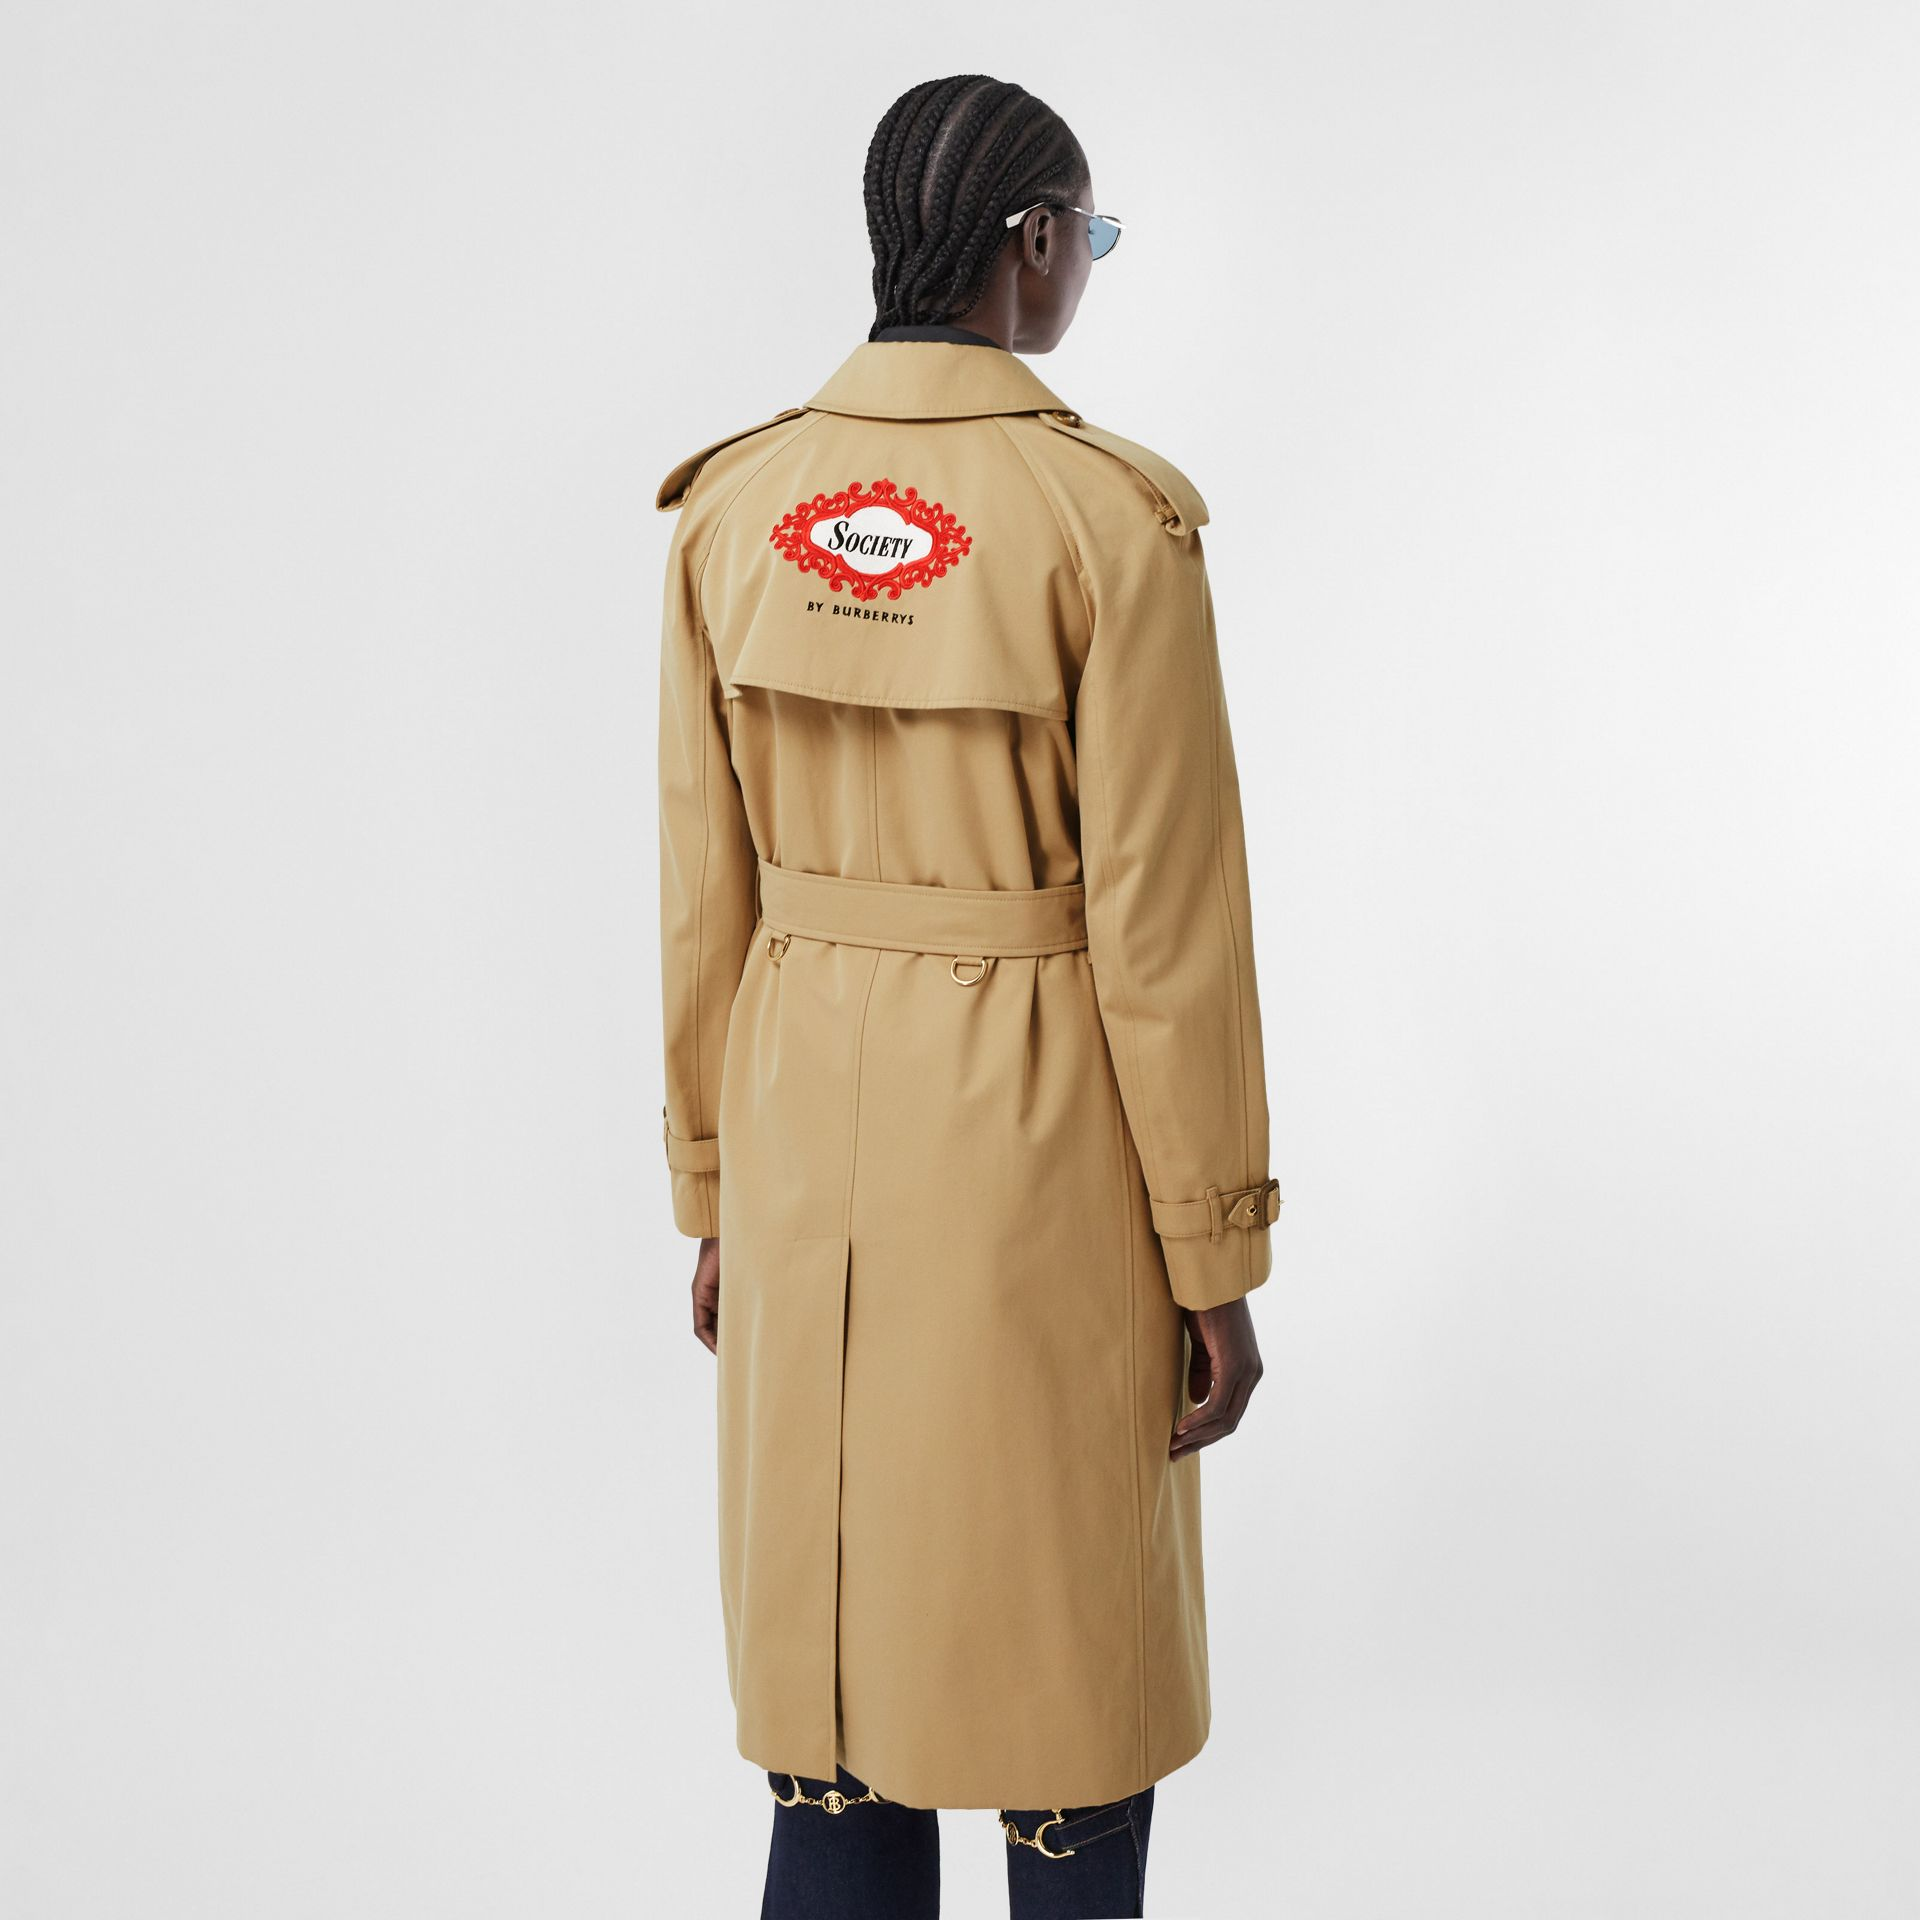 Archive Scarf Print-lined Trench Coat - Women | Burberry - gallery image 7